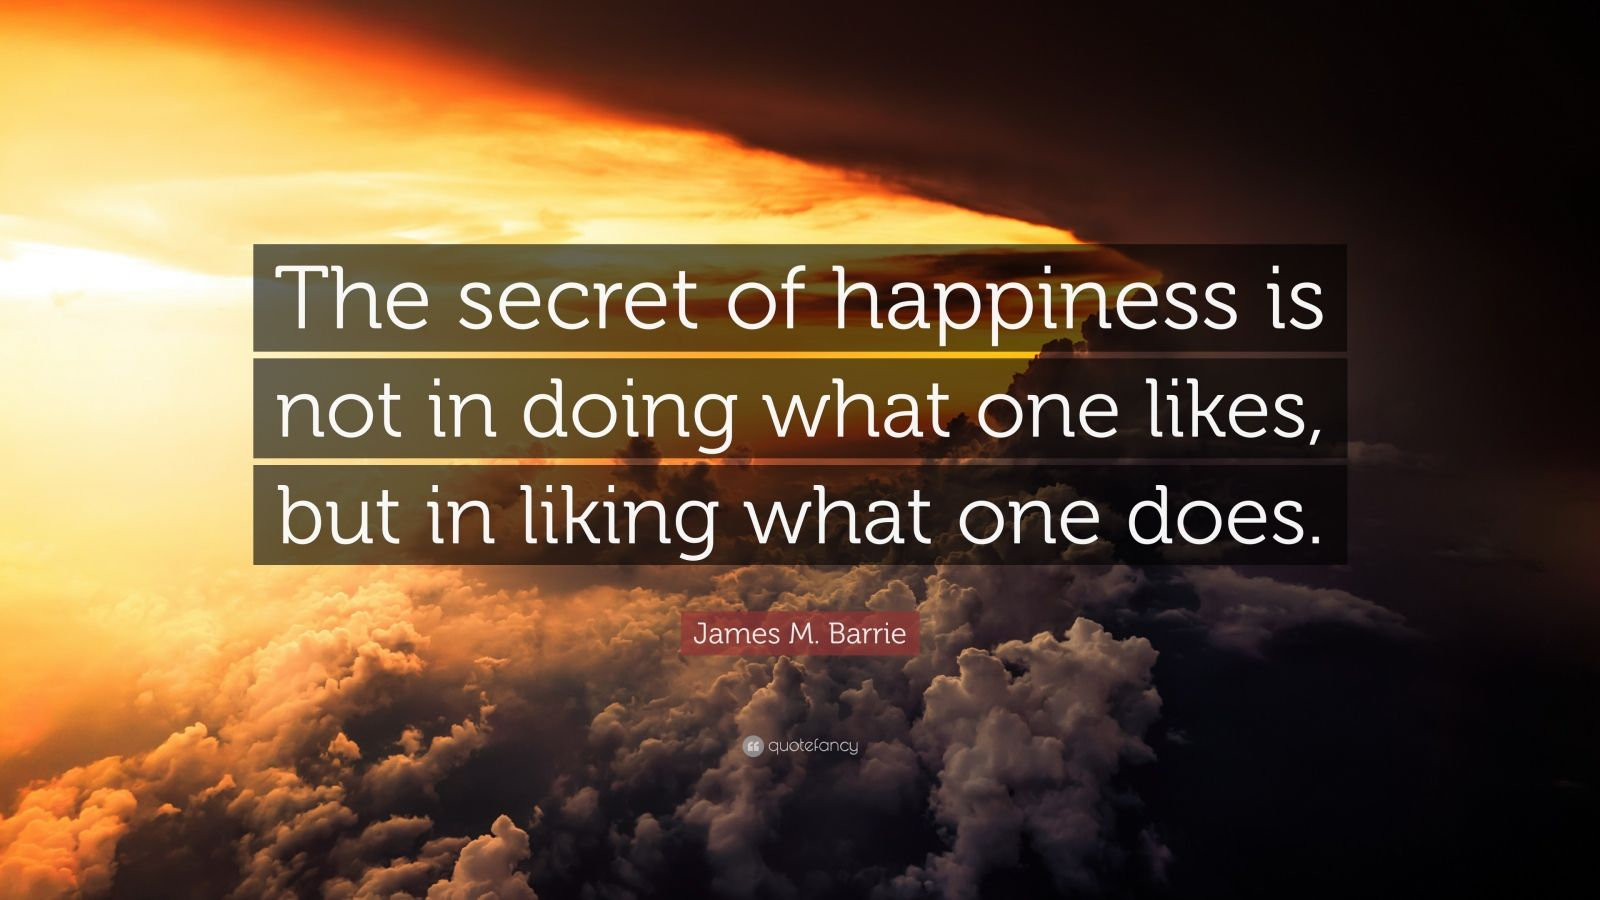 Motivational Life Quotes Wallpapers James M Barrie Quote The Secret Of Happiness Is Not In